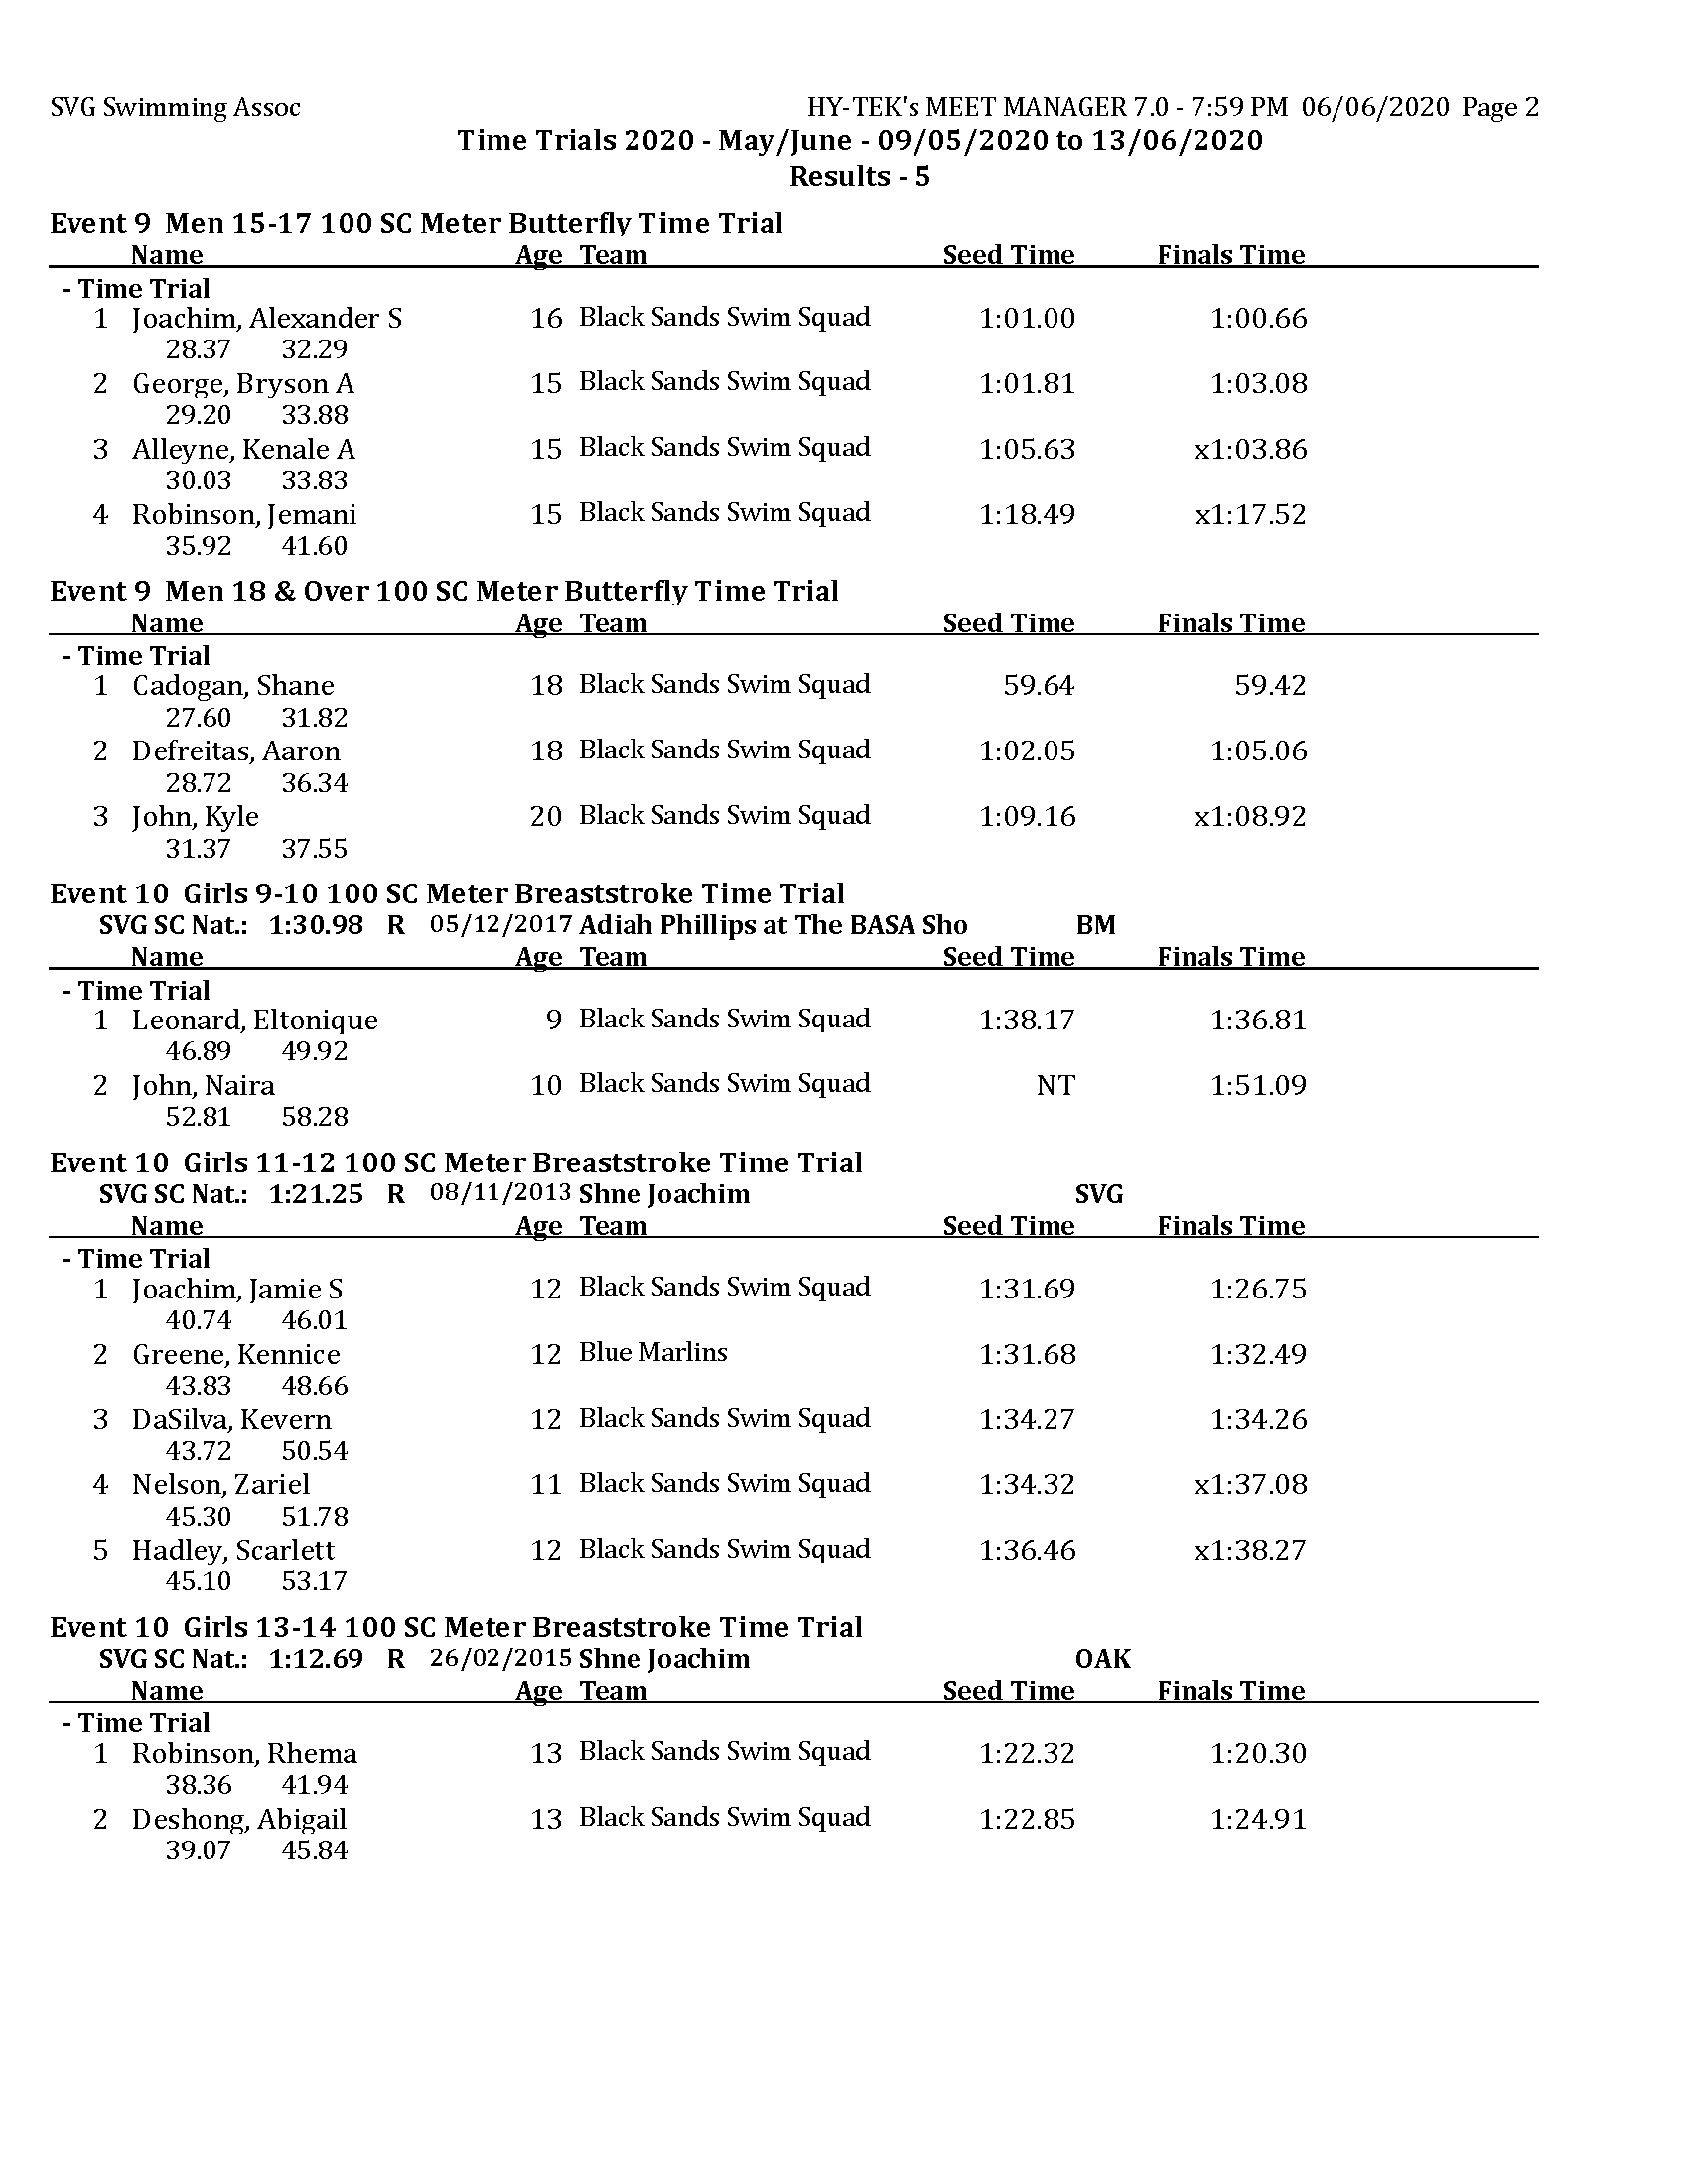 TT 2020 - May - Results day 5 MM_Page_2